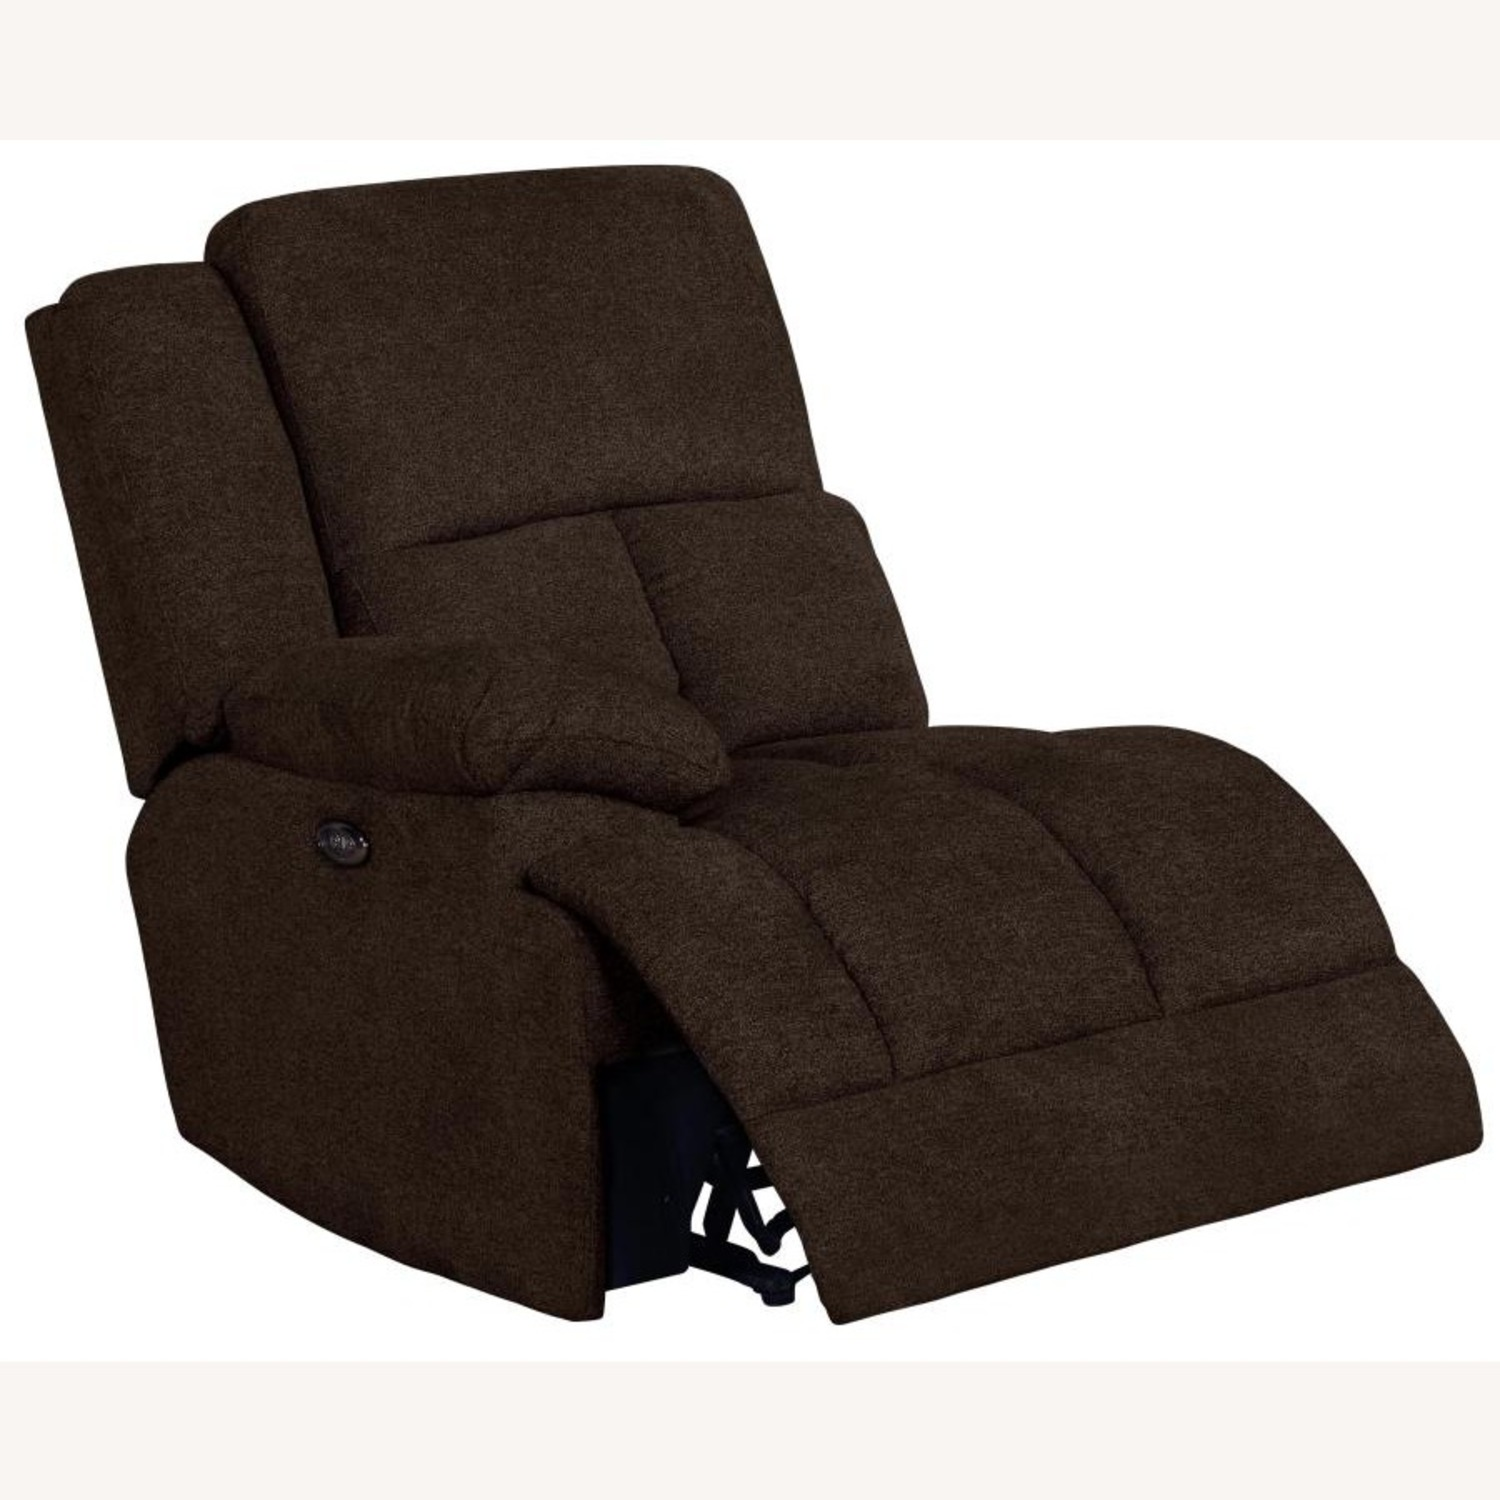 6Piece Power Sectional In Brown Performance Fabric - image-2